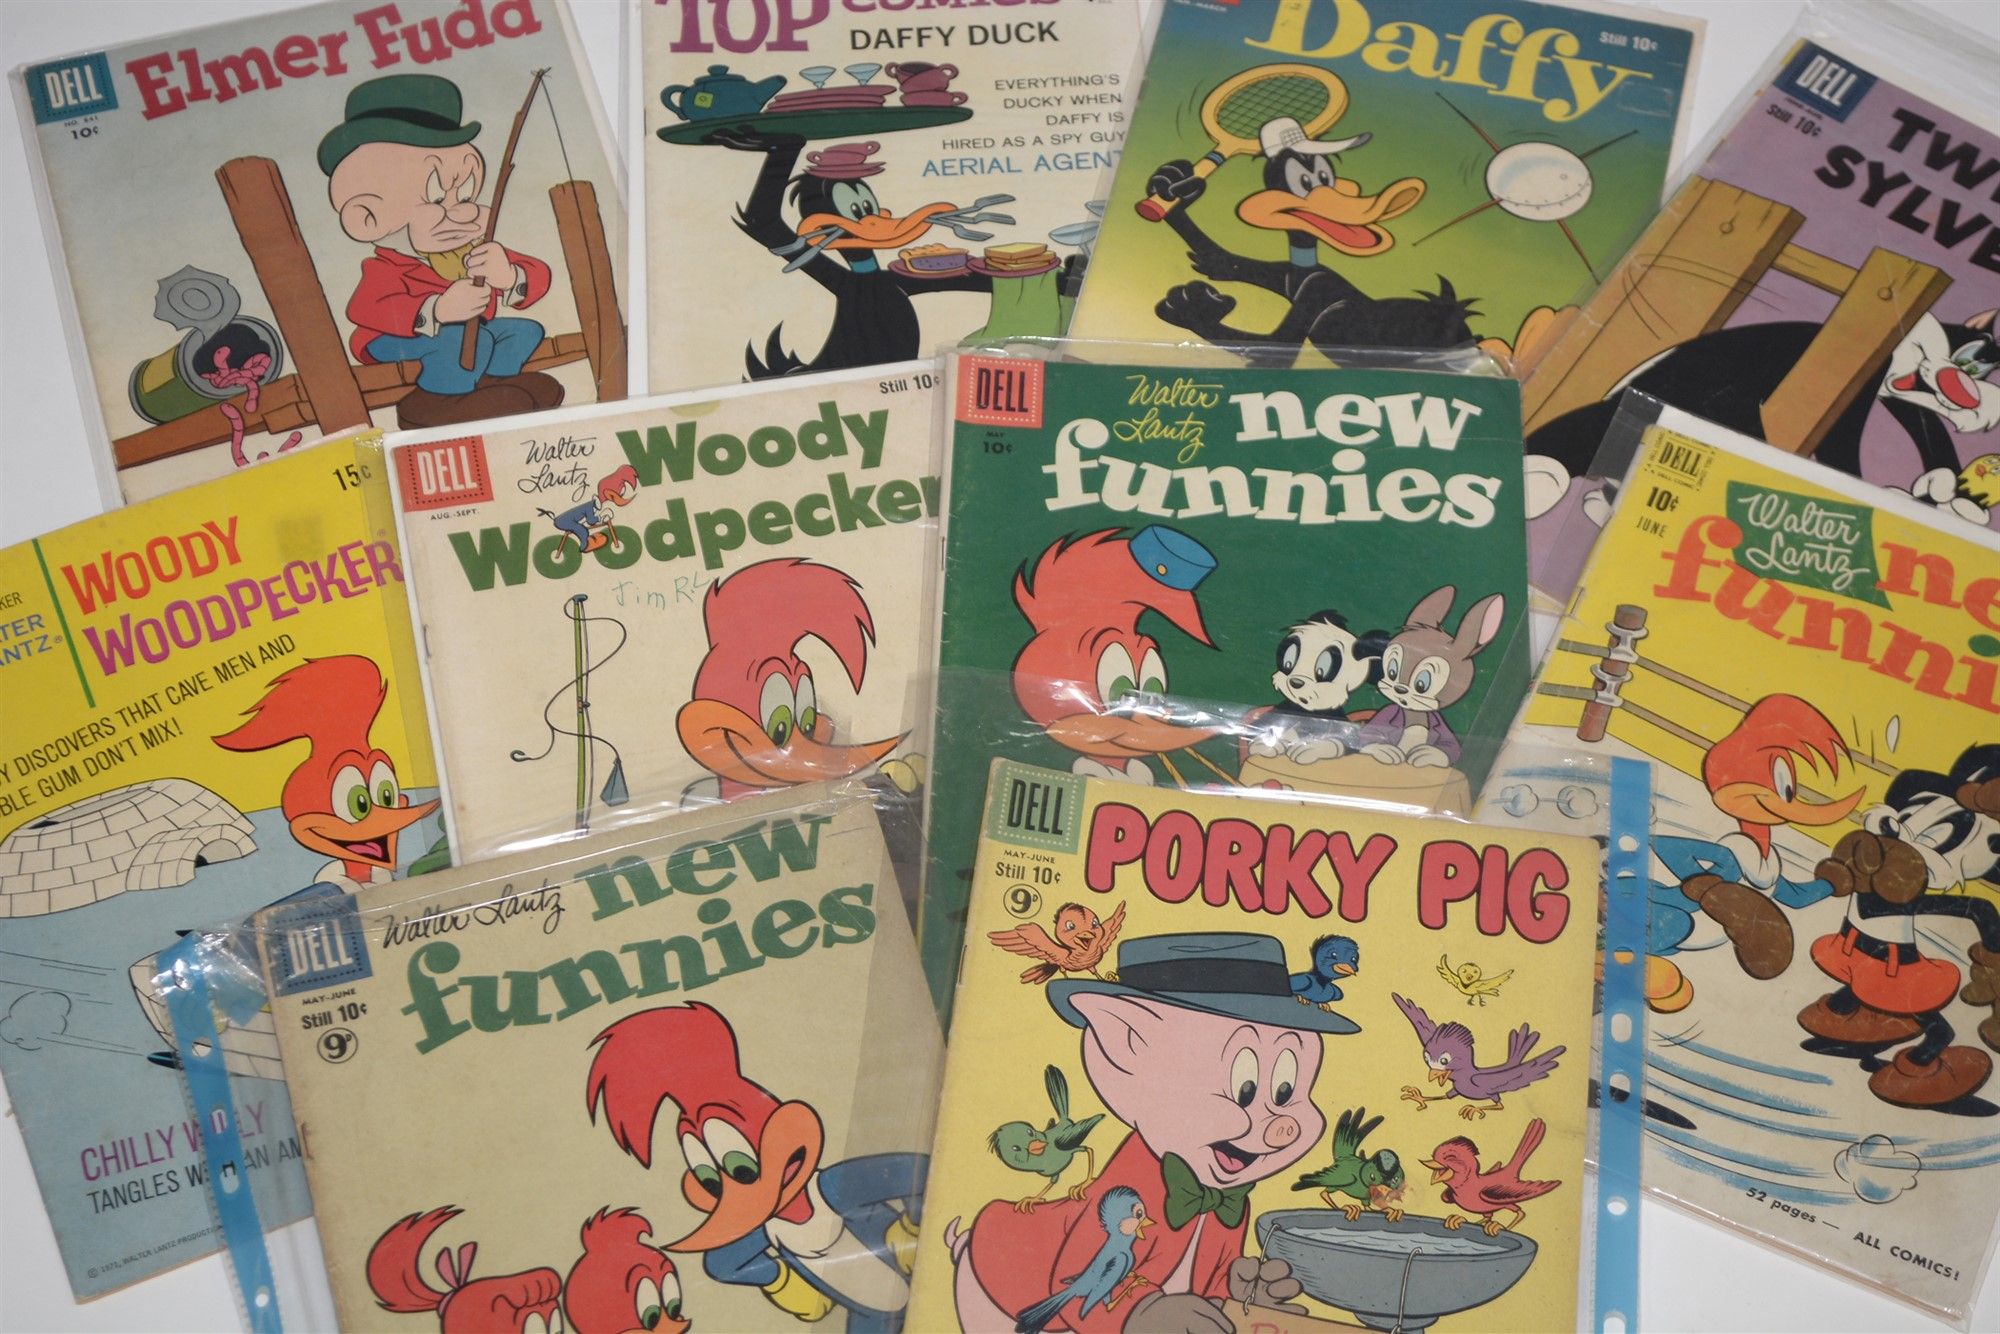 Dell Comics, humour titles including: Road Runner, Daffy and Looney Tunes: and New Funnies Woody - Image 2 of 4